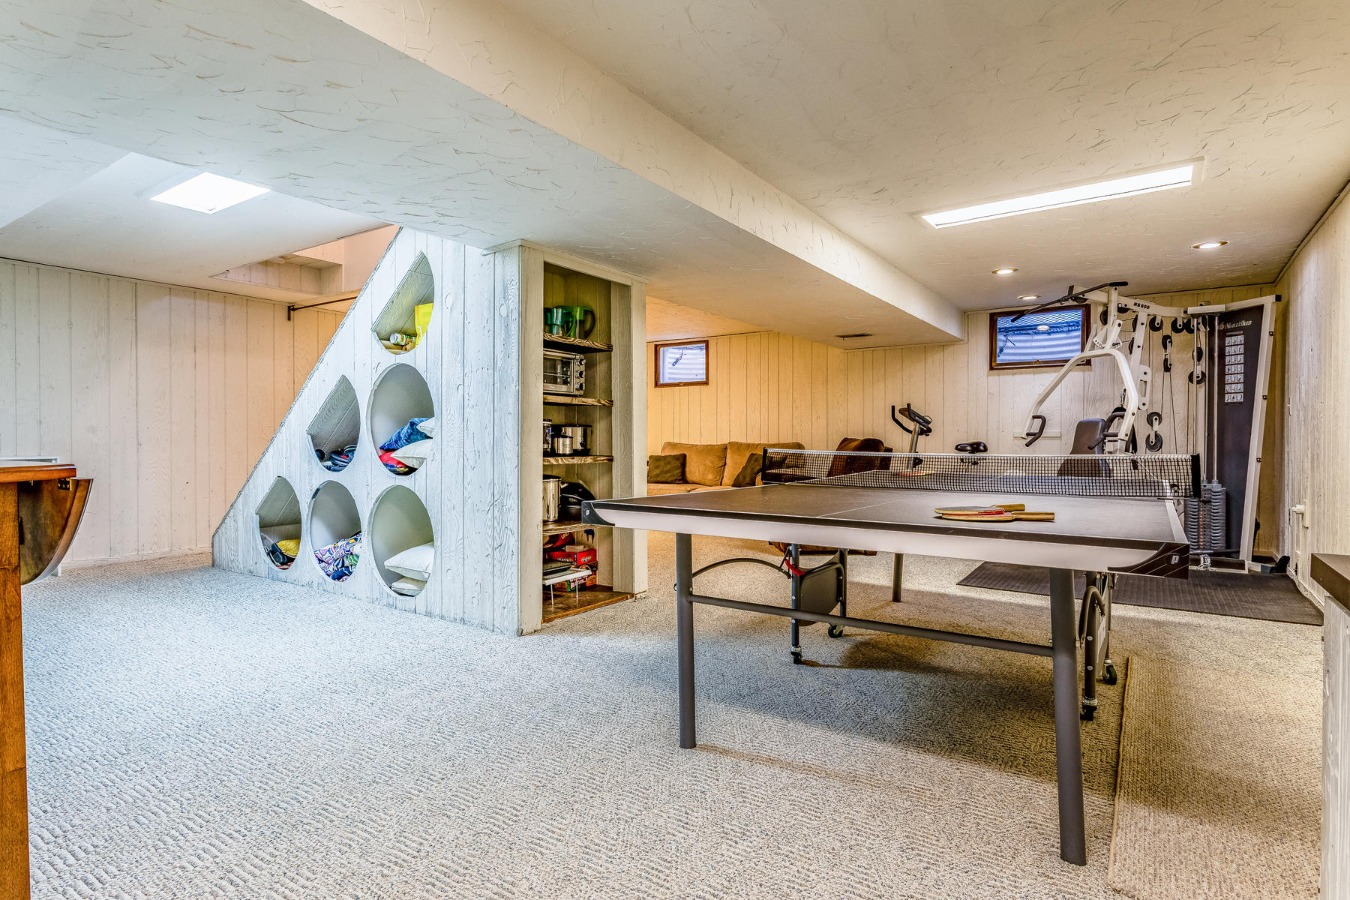 Room for Game Tables & More with Built-in Storage